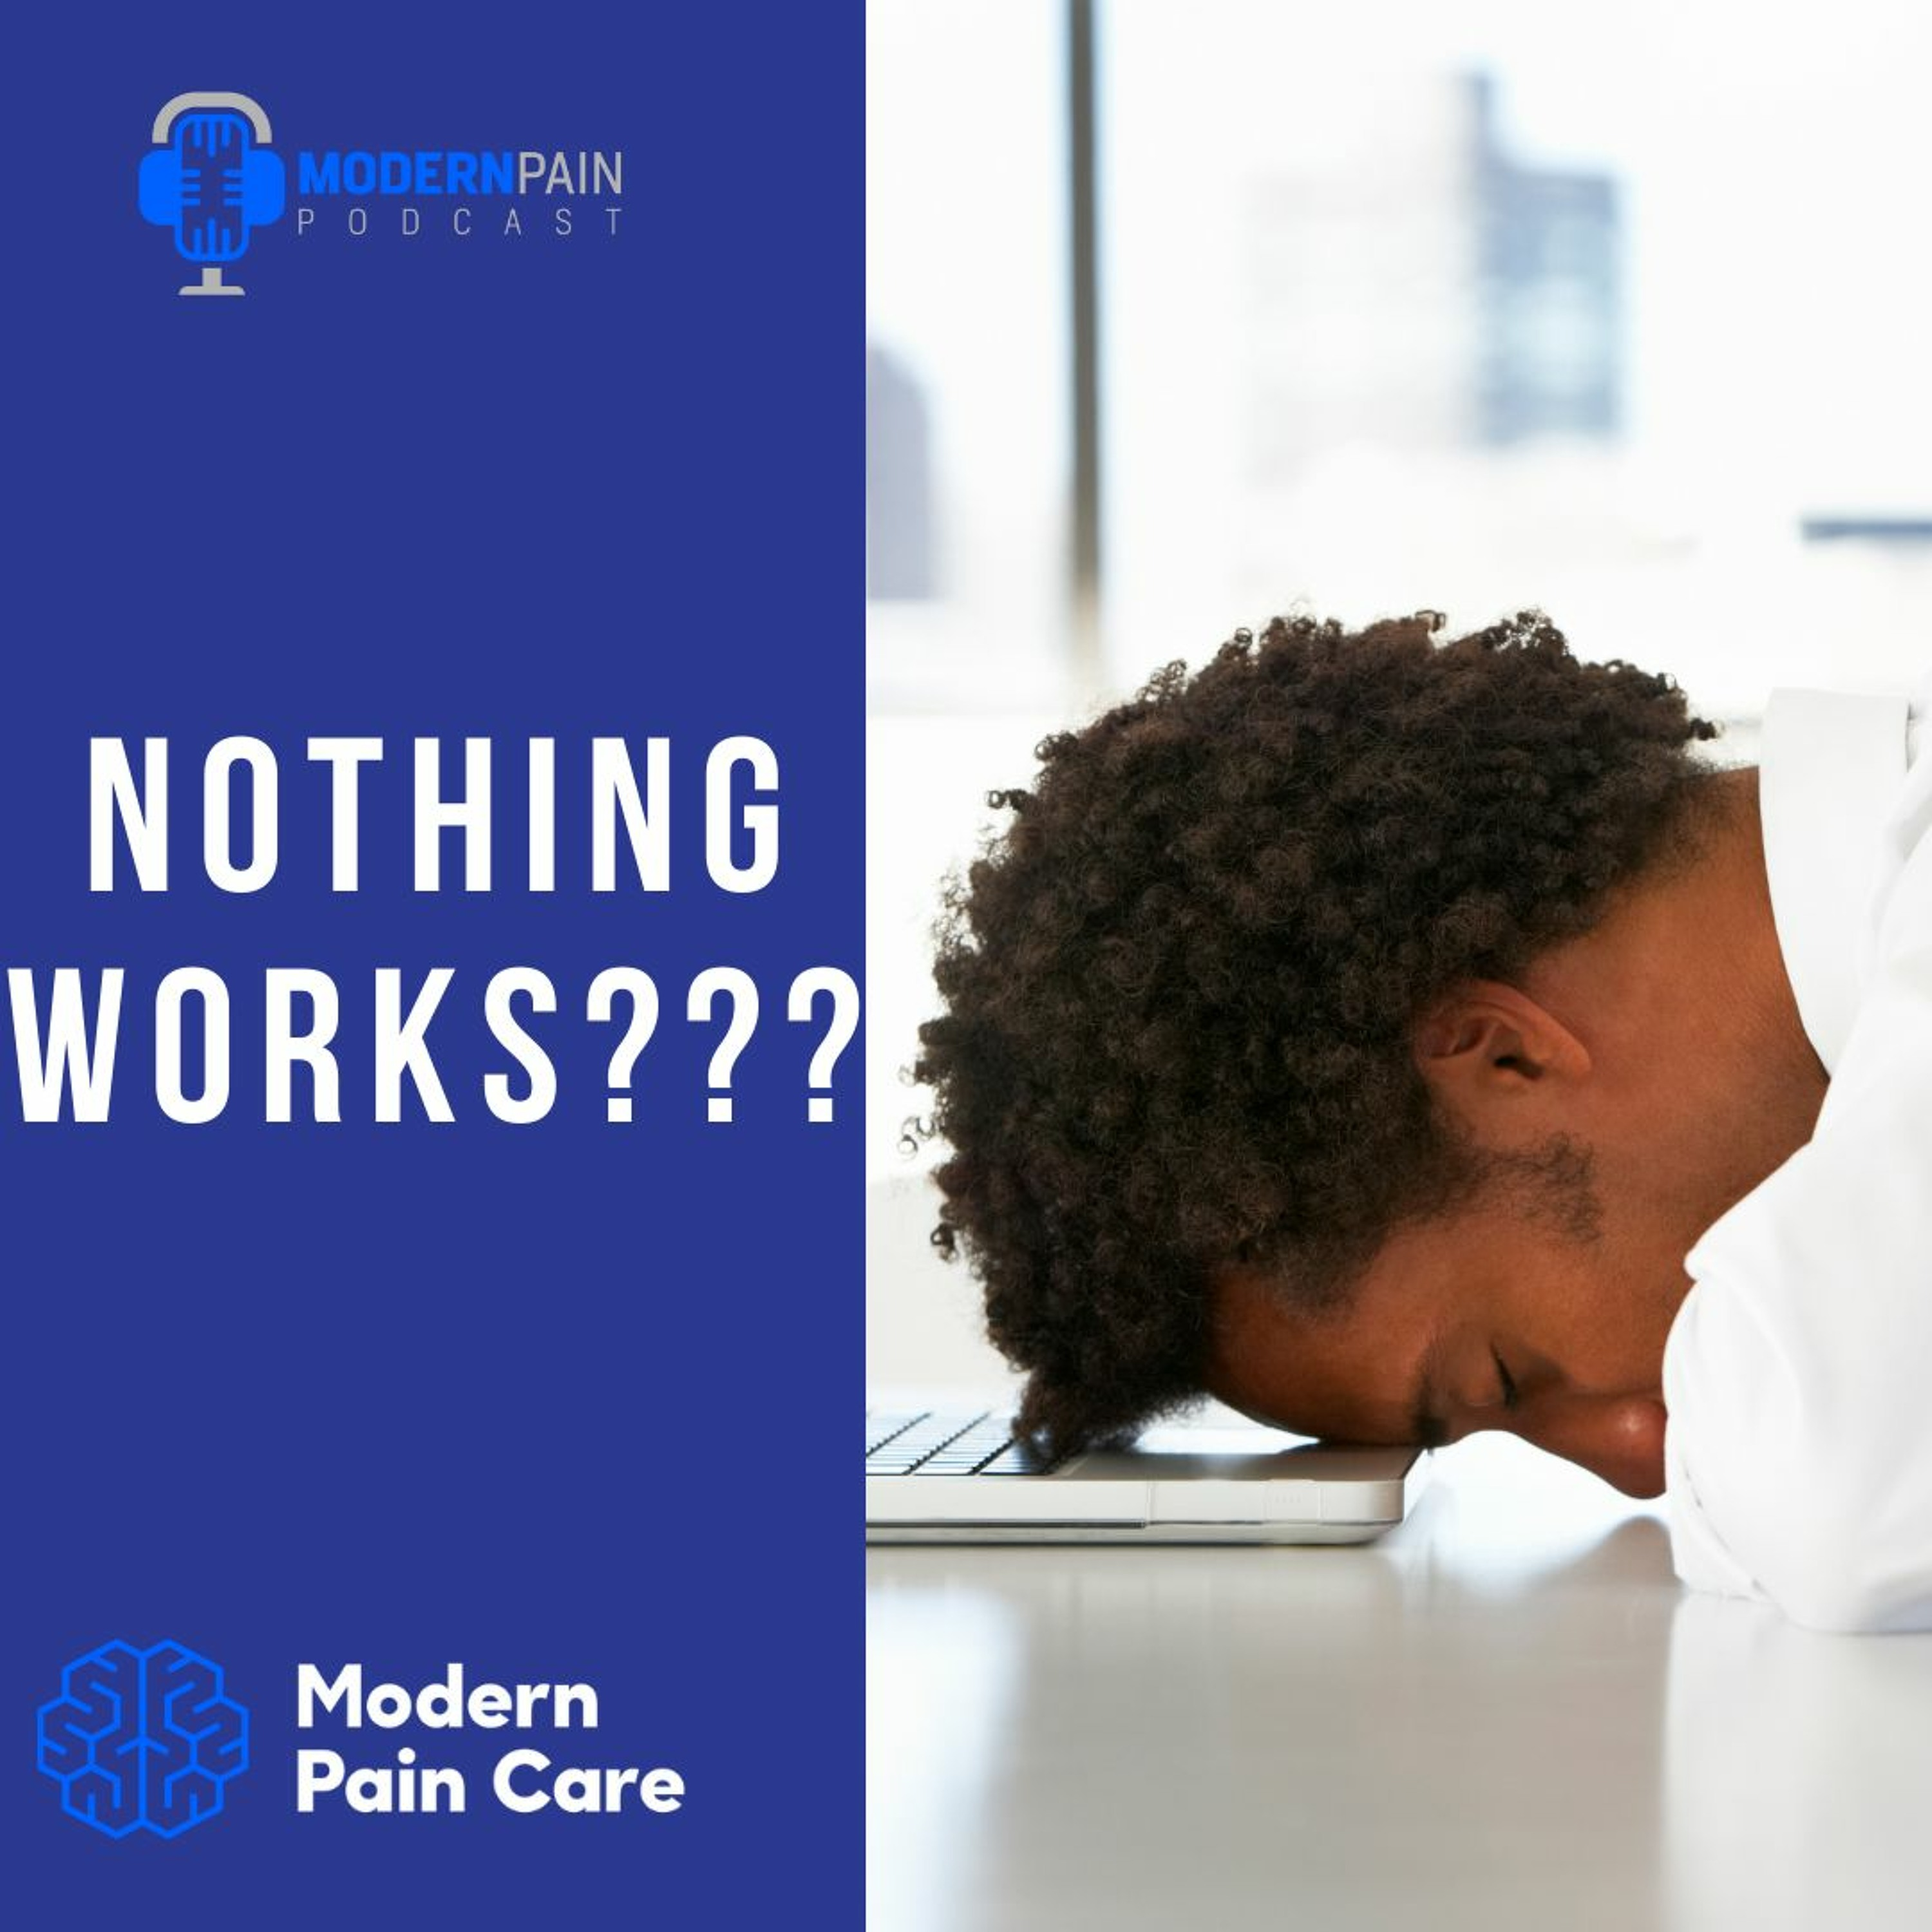 Nothing Works For Pain